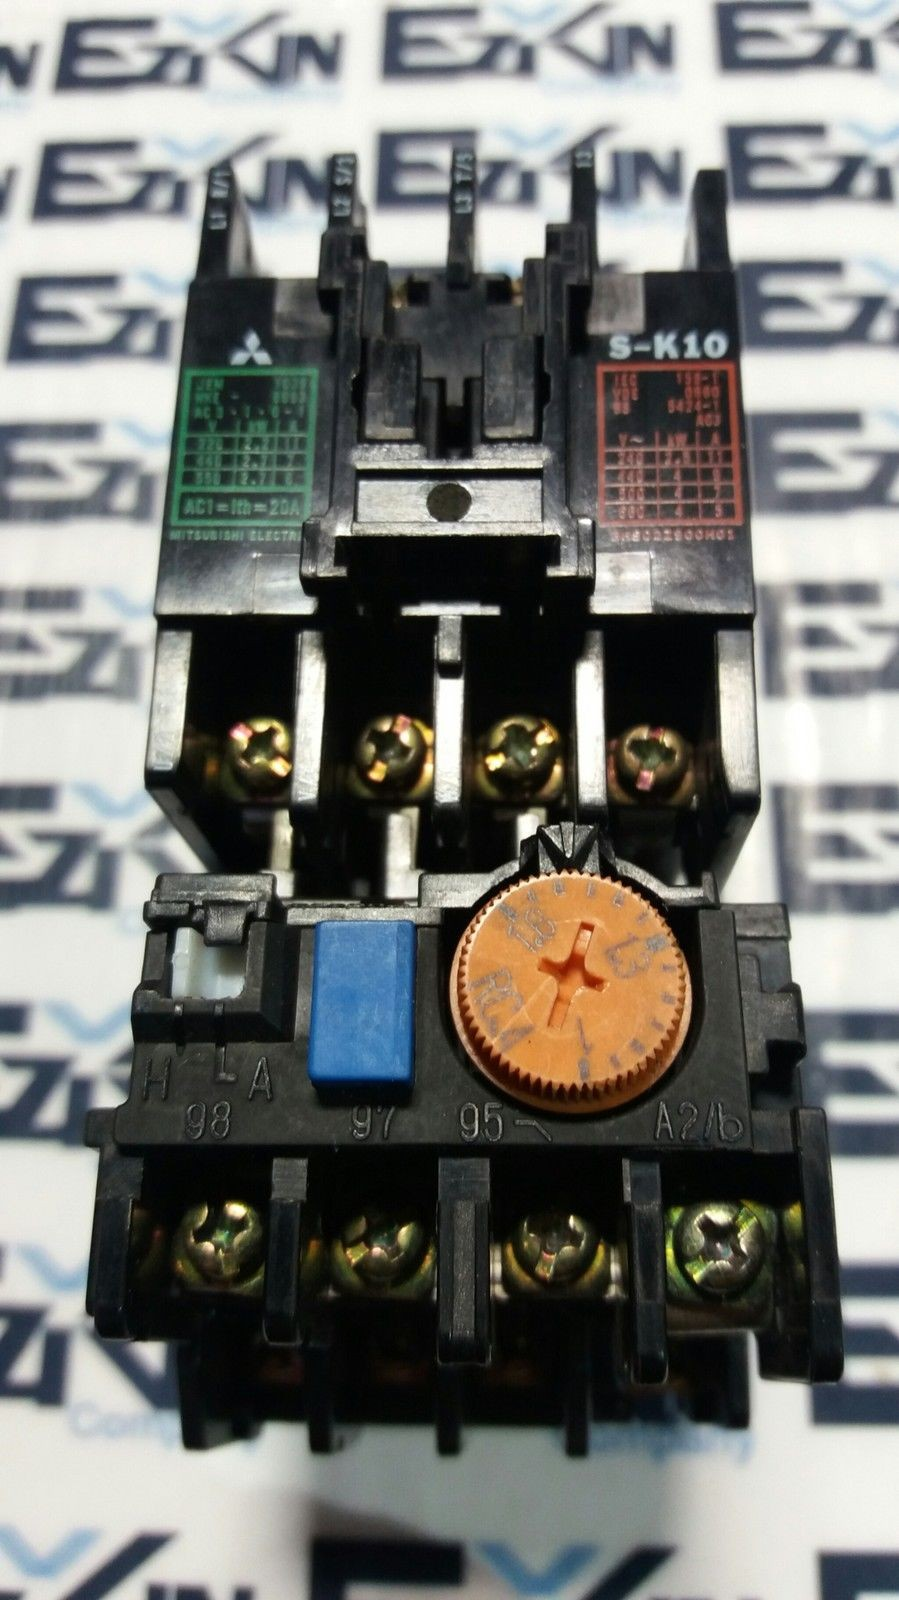 MITSUBISHI S-K10 SERIAL 108A CONTACTOR TH-K12KP SERIAL 106S